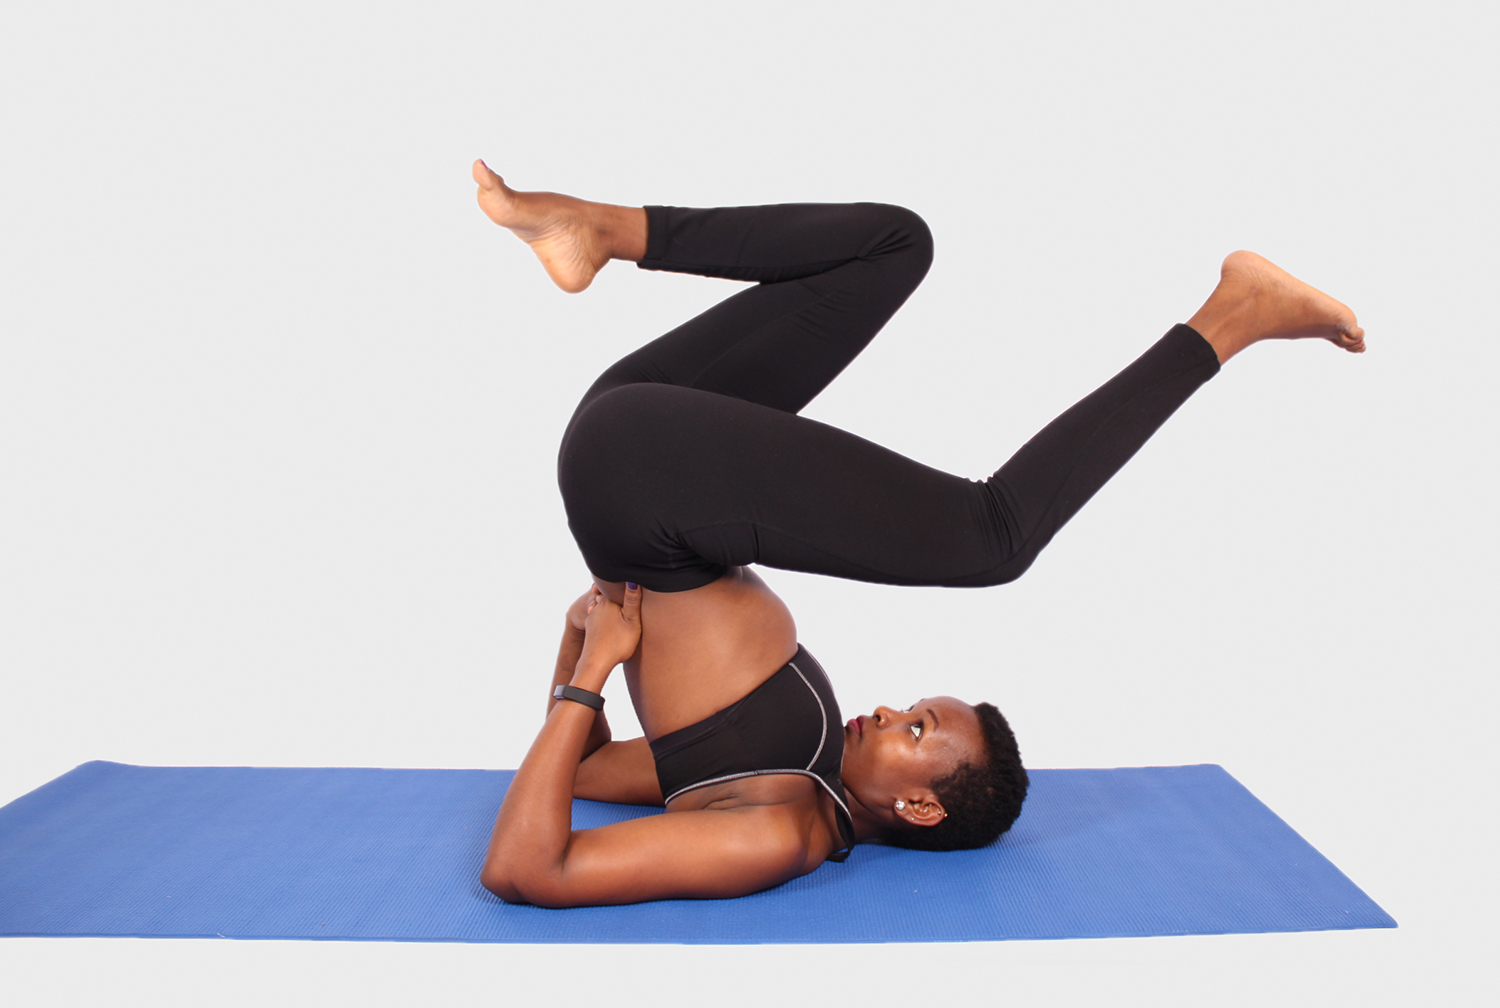 Woman doing yoga pose for neck and back muscles